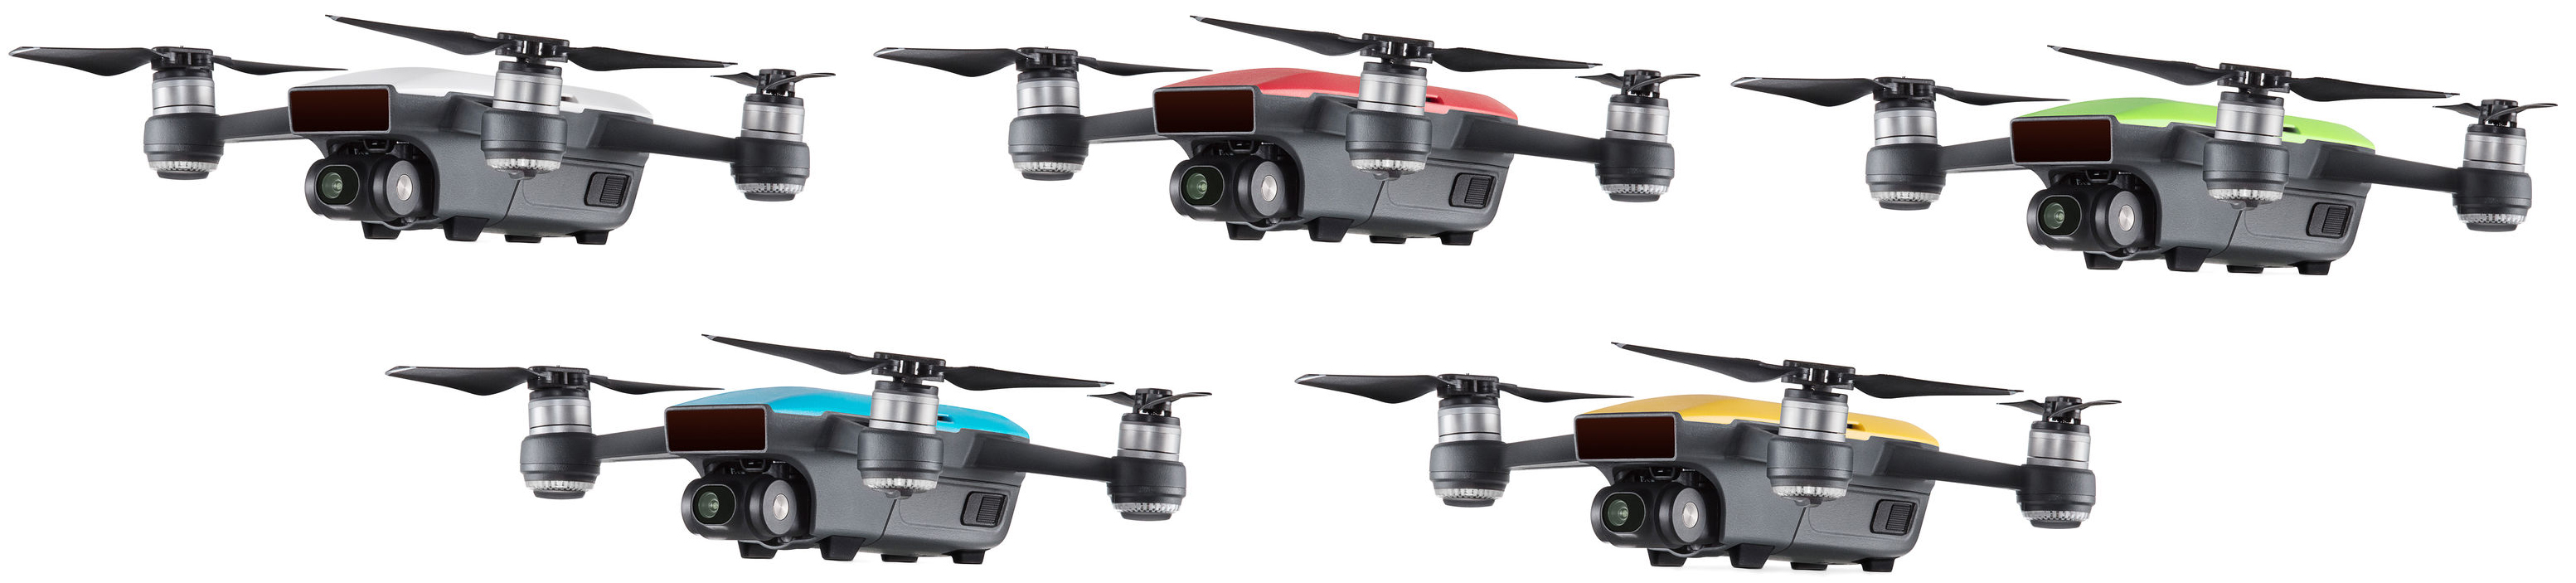 Dji Spark Quadcopter Alpine White Lava Red Meadow Green Sky Sunrise Yellow Preview